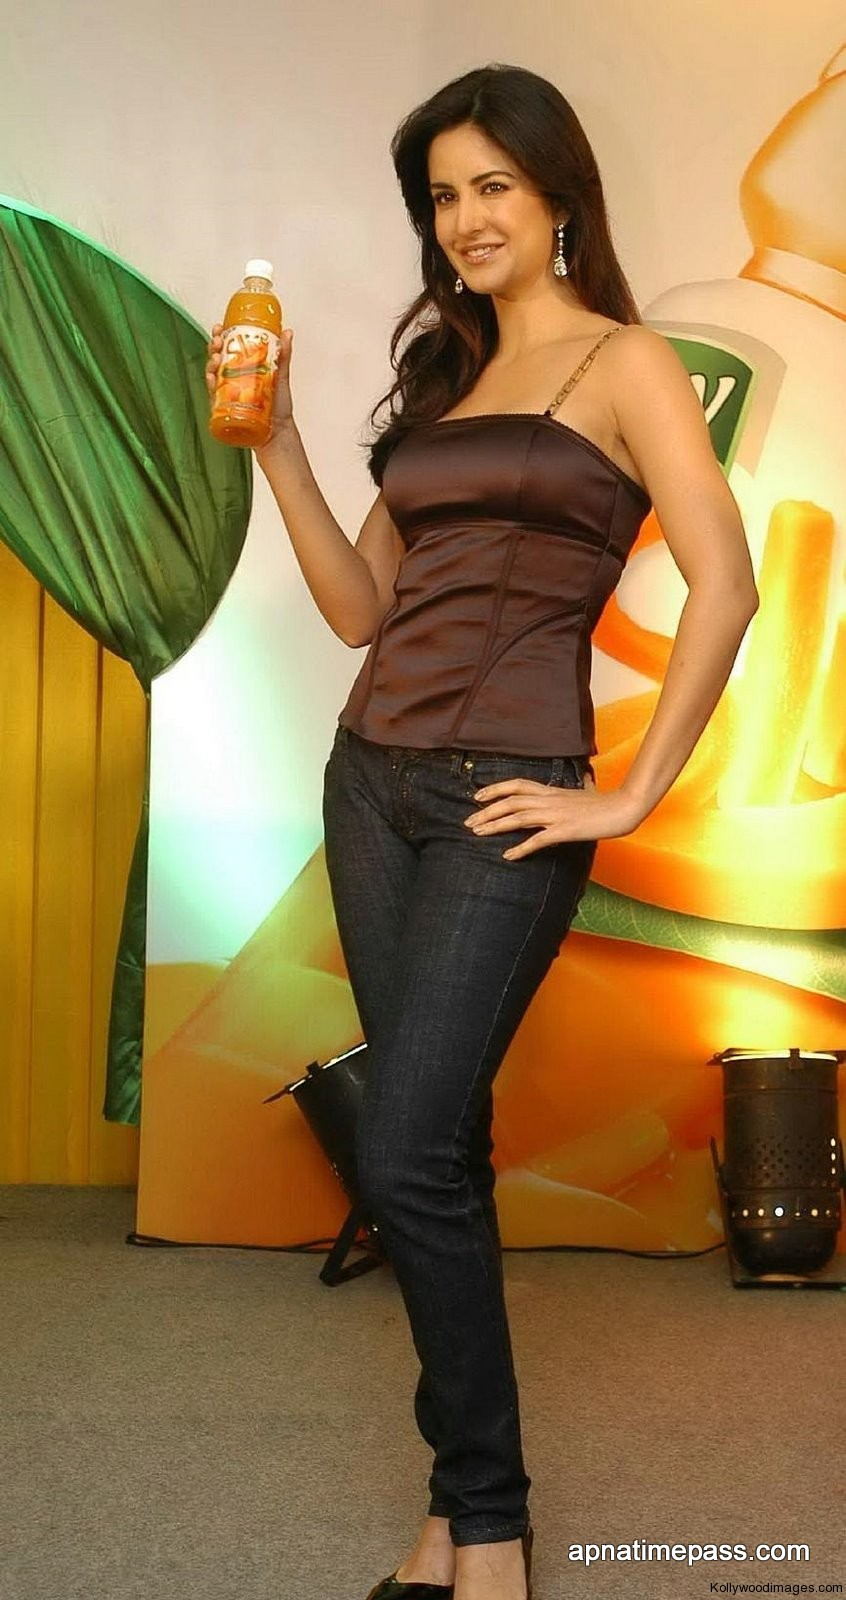 KATRINA KAIF HOT IN JEANS - SEXY CELEBERTIES